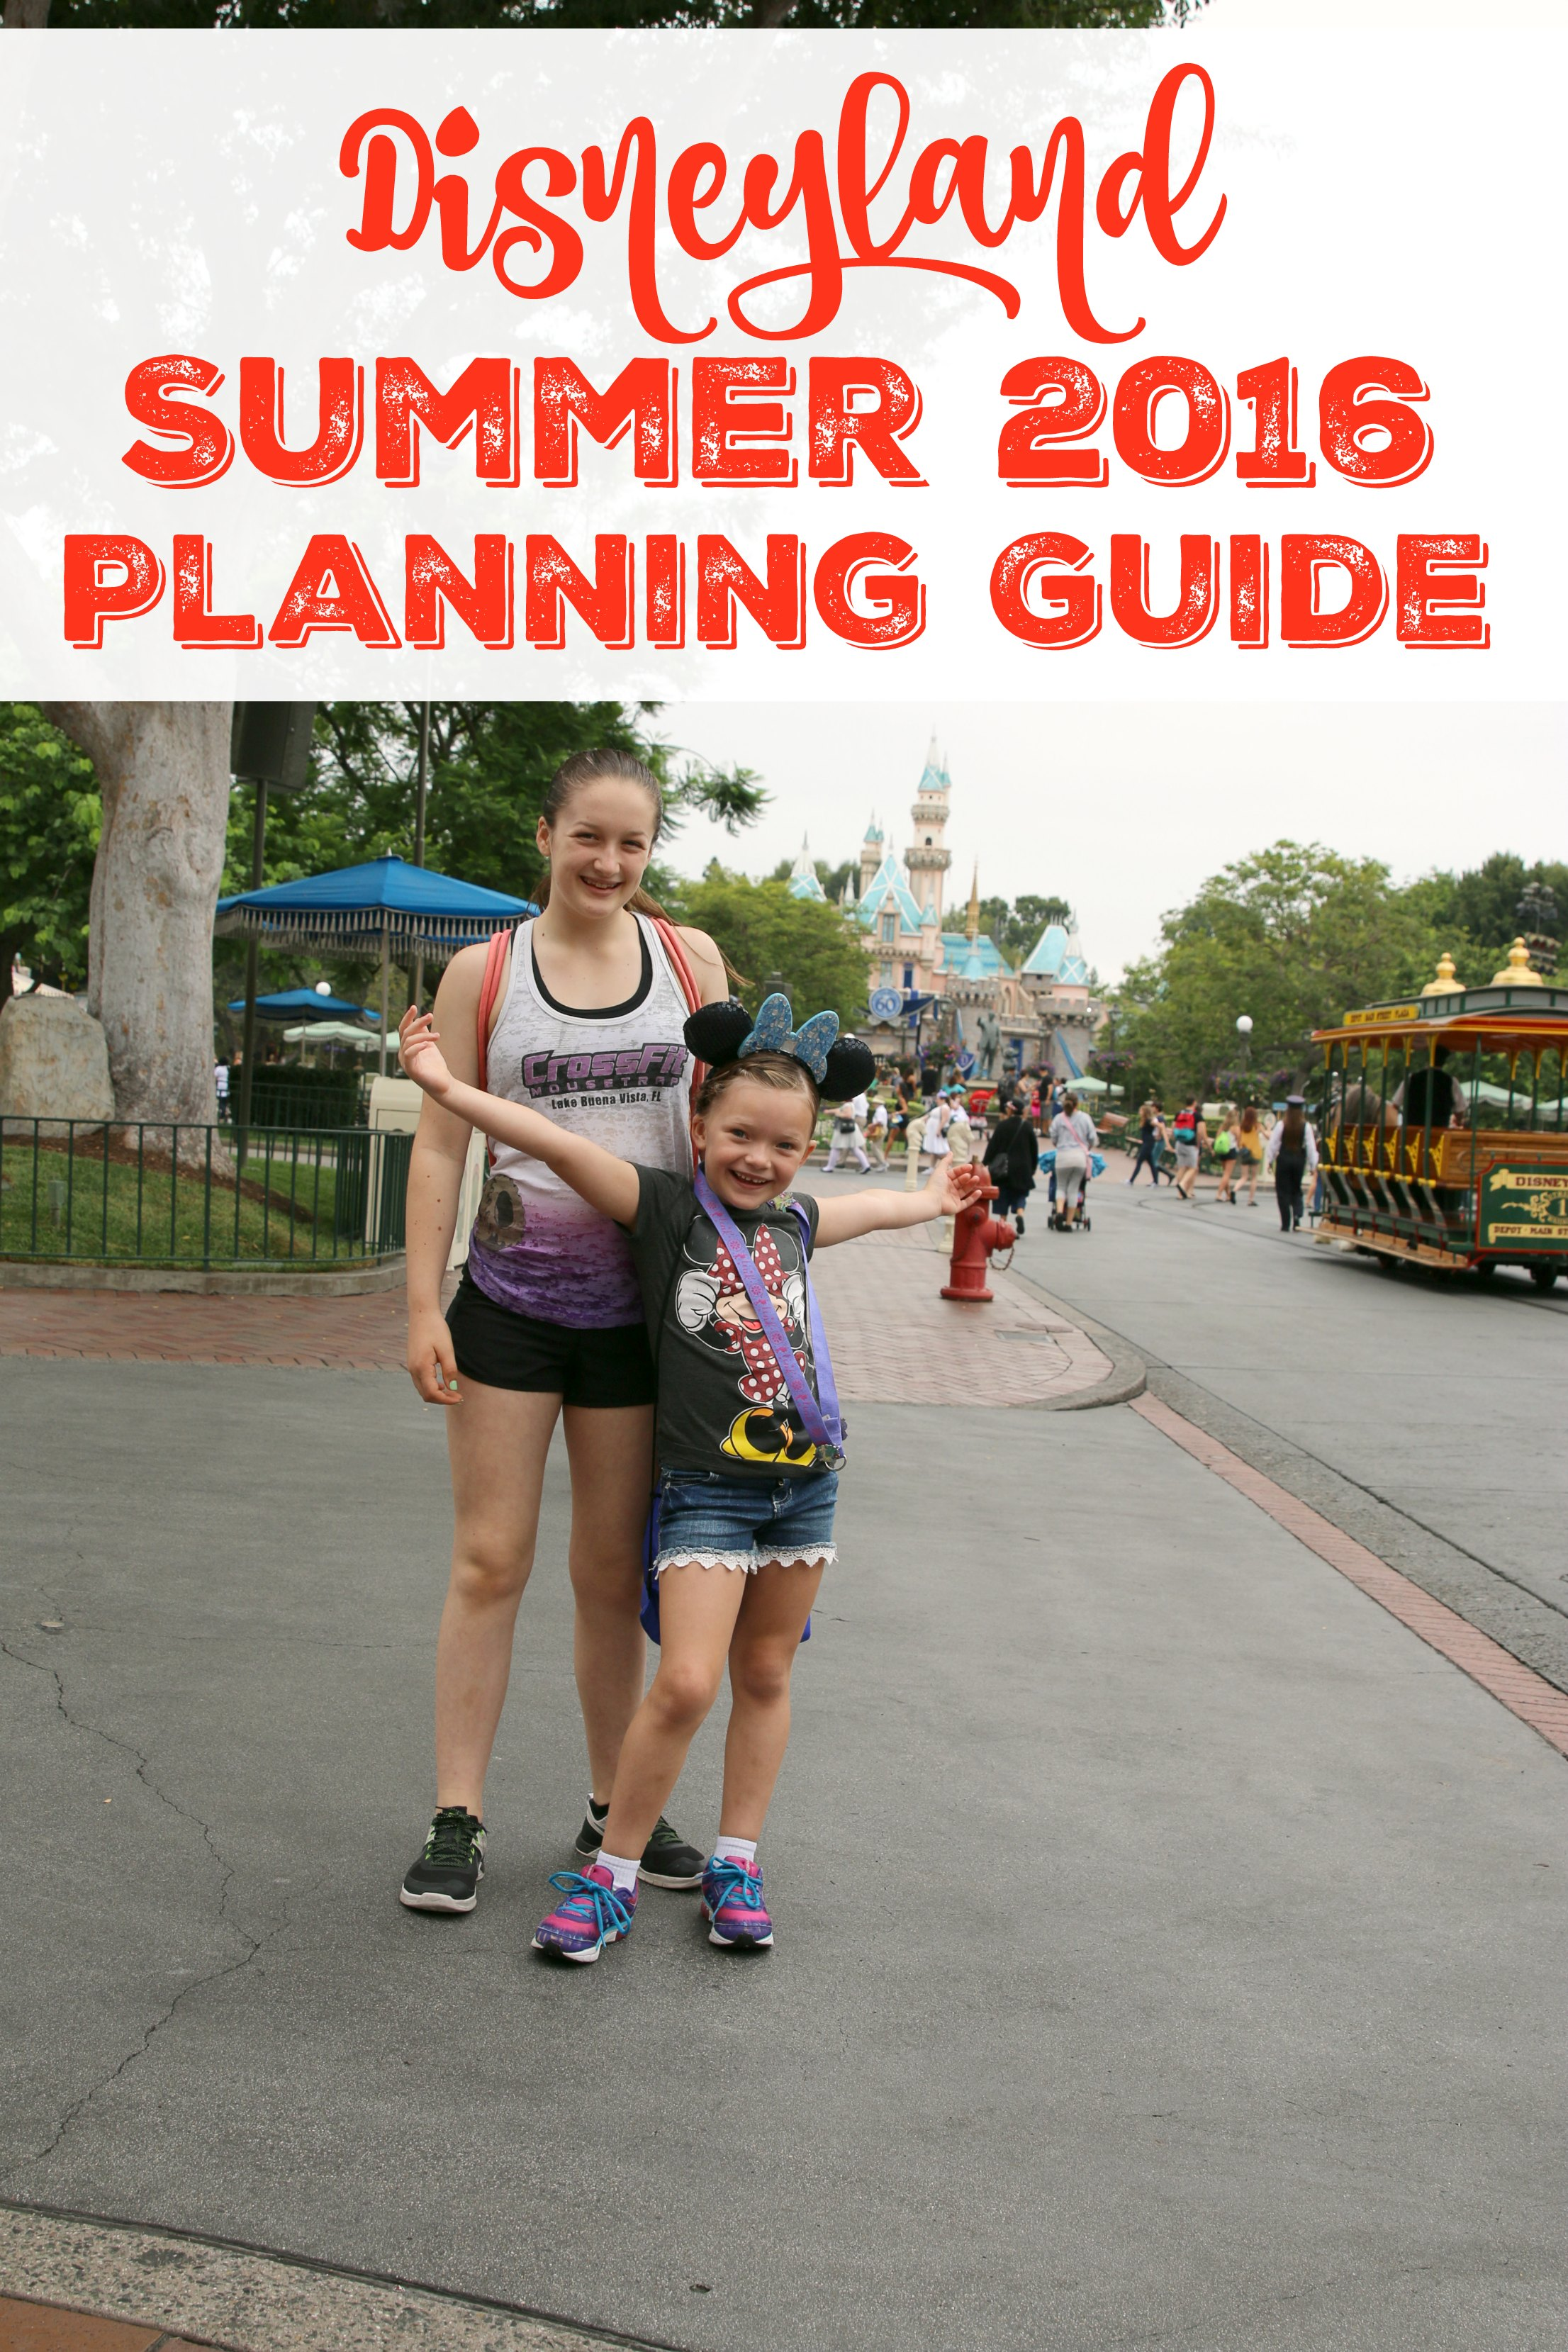 Disneyland Summer 2016 Planning Guide